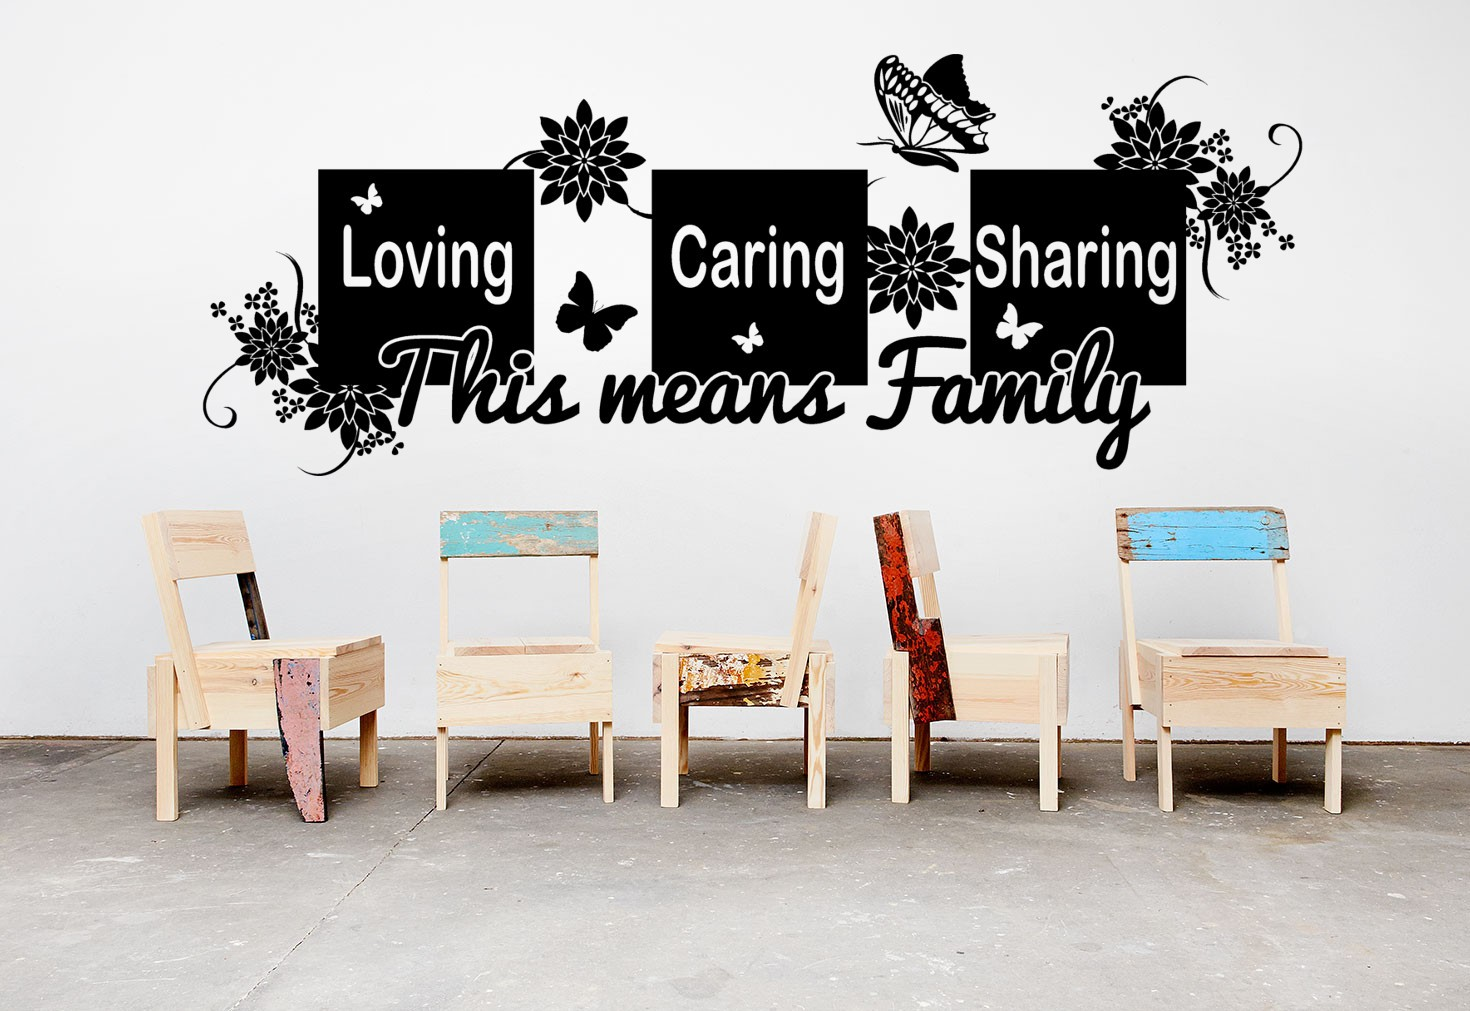 Loving caring sharing quote wall decal for living room decoration.